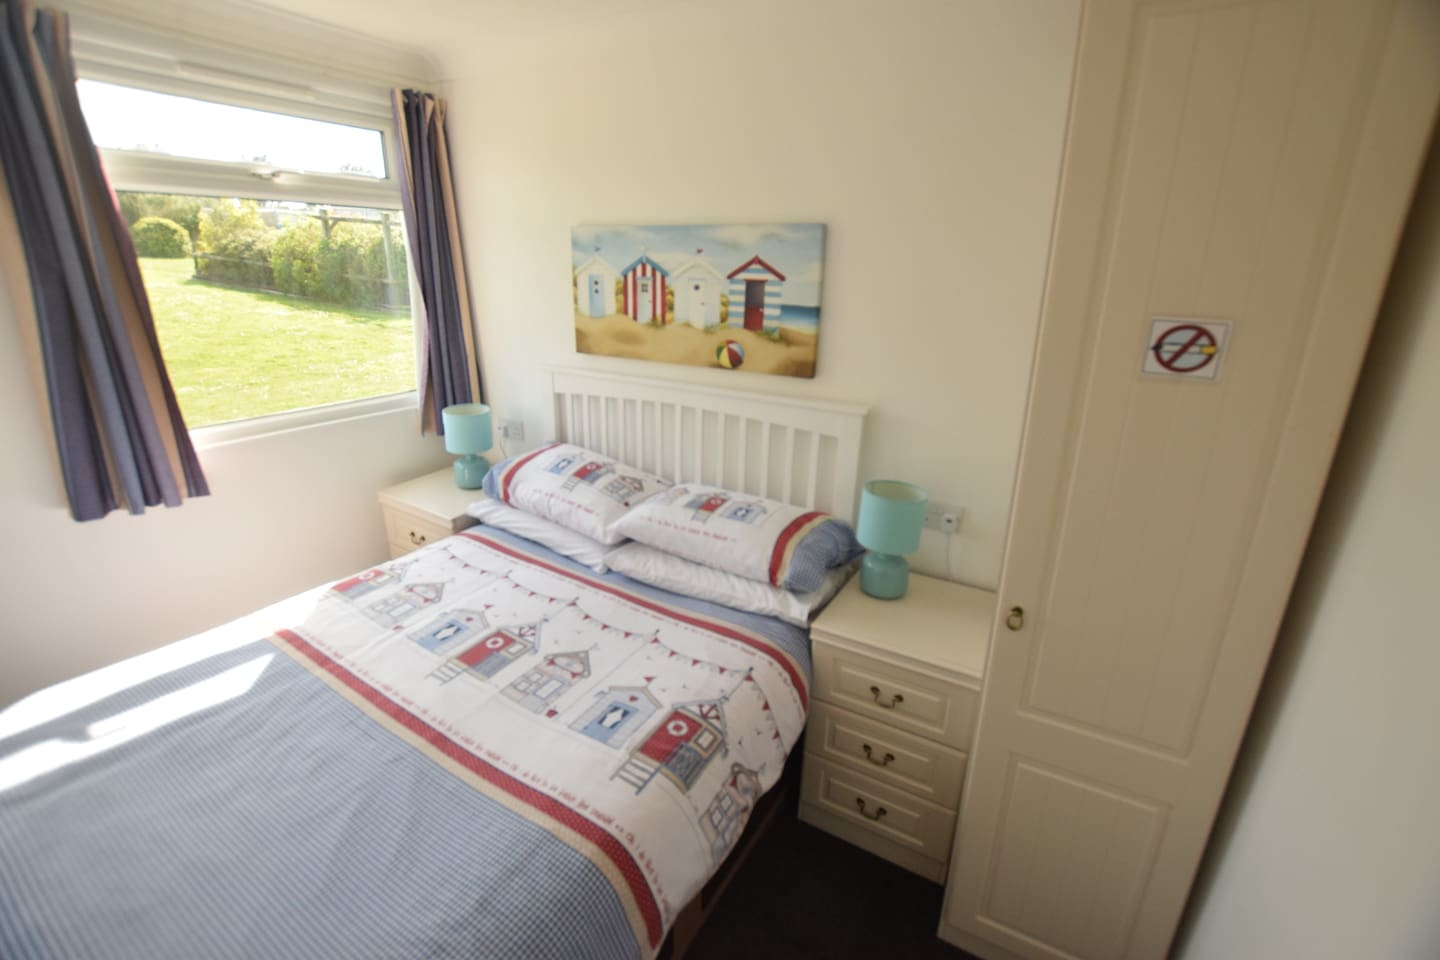 The double bedroom in our holiday chalet has a double bed with bedside drawers and a wardrobe